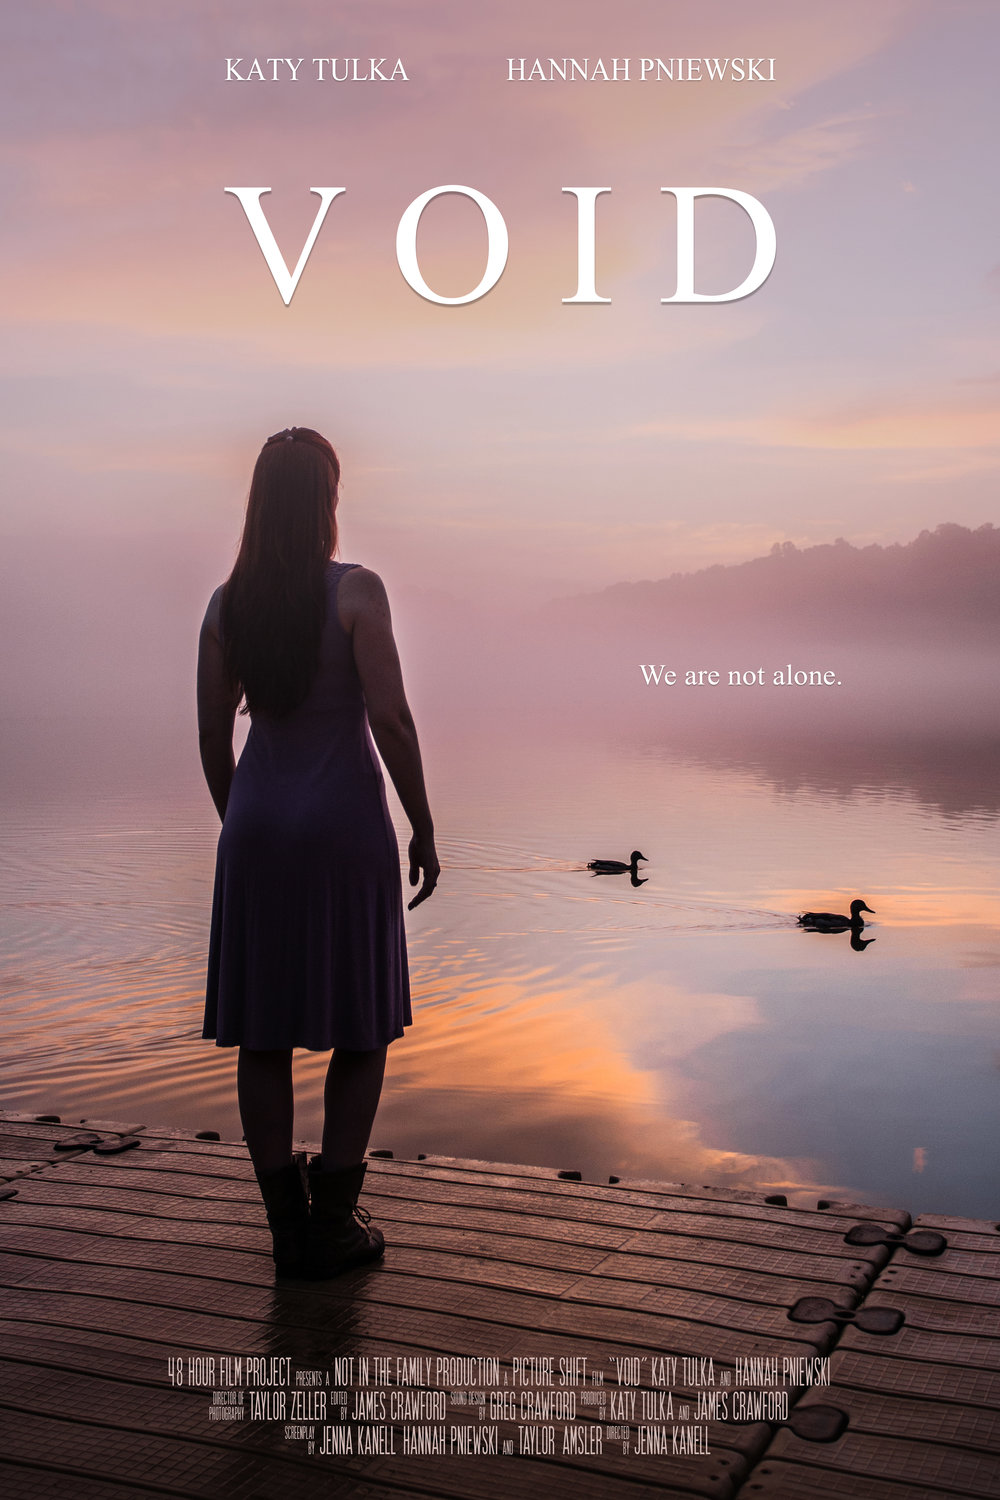 """VOID"" filmmakers interviewed on NPR"